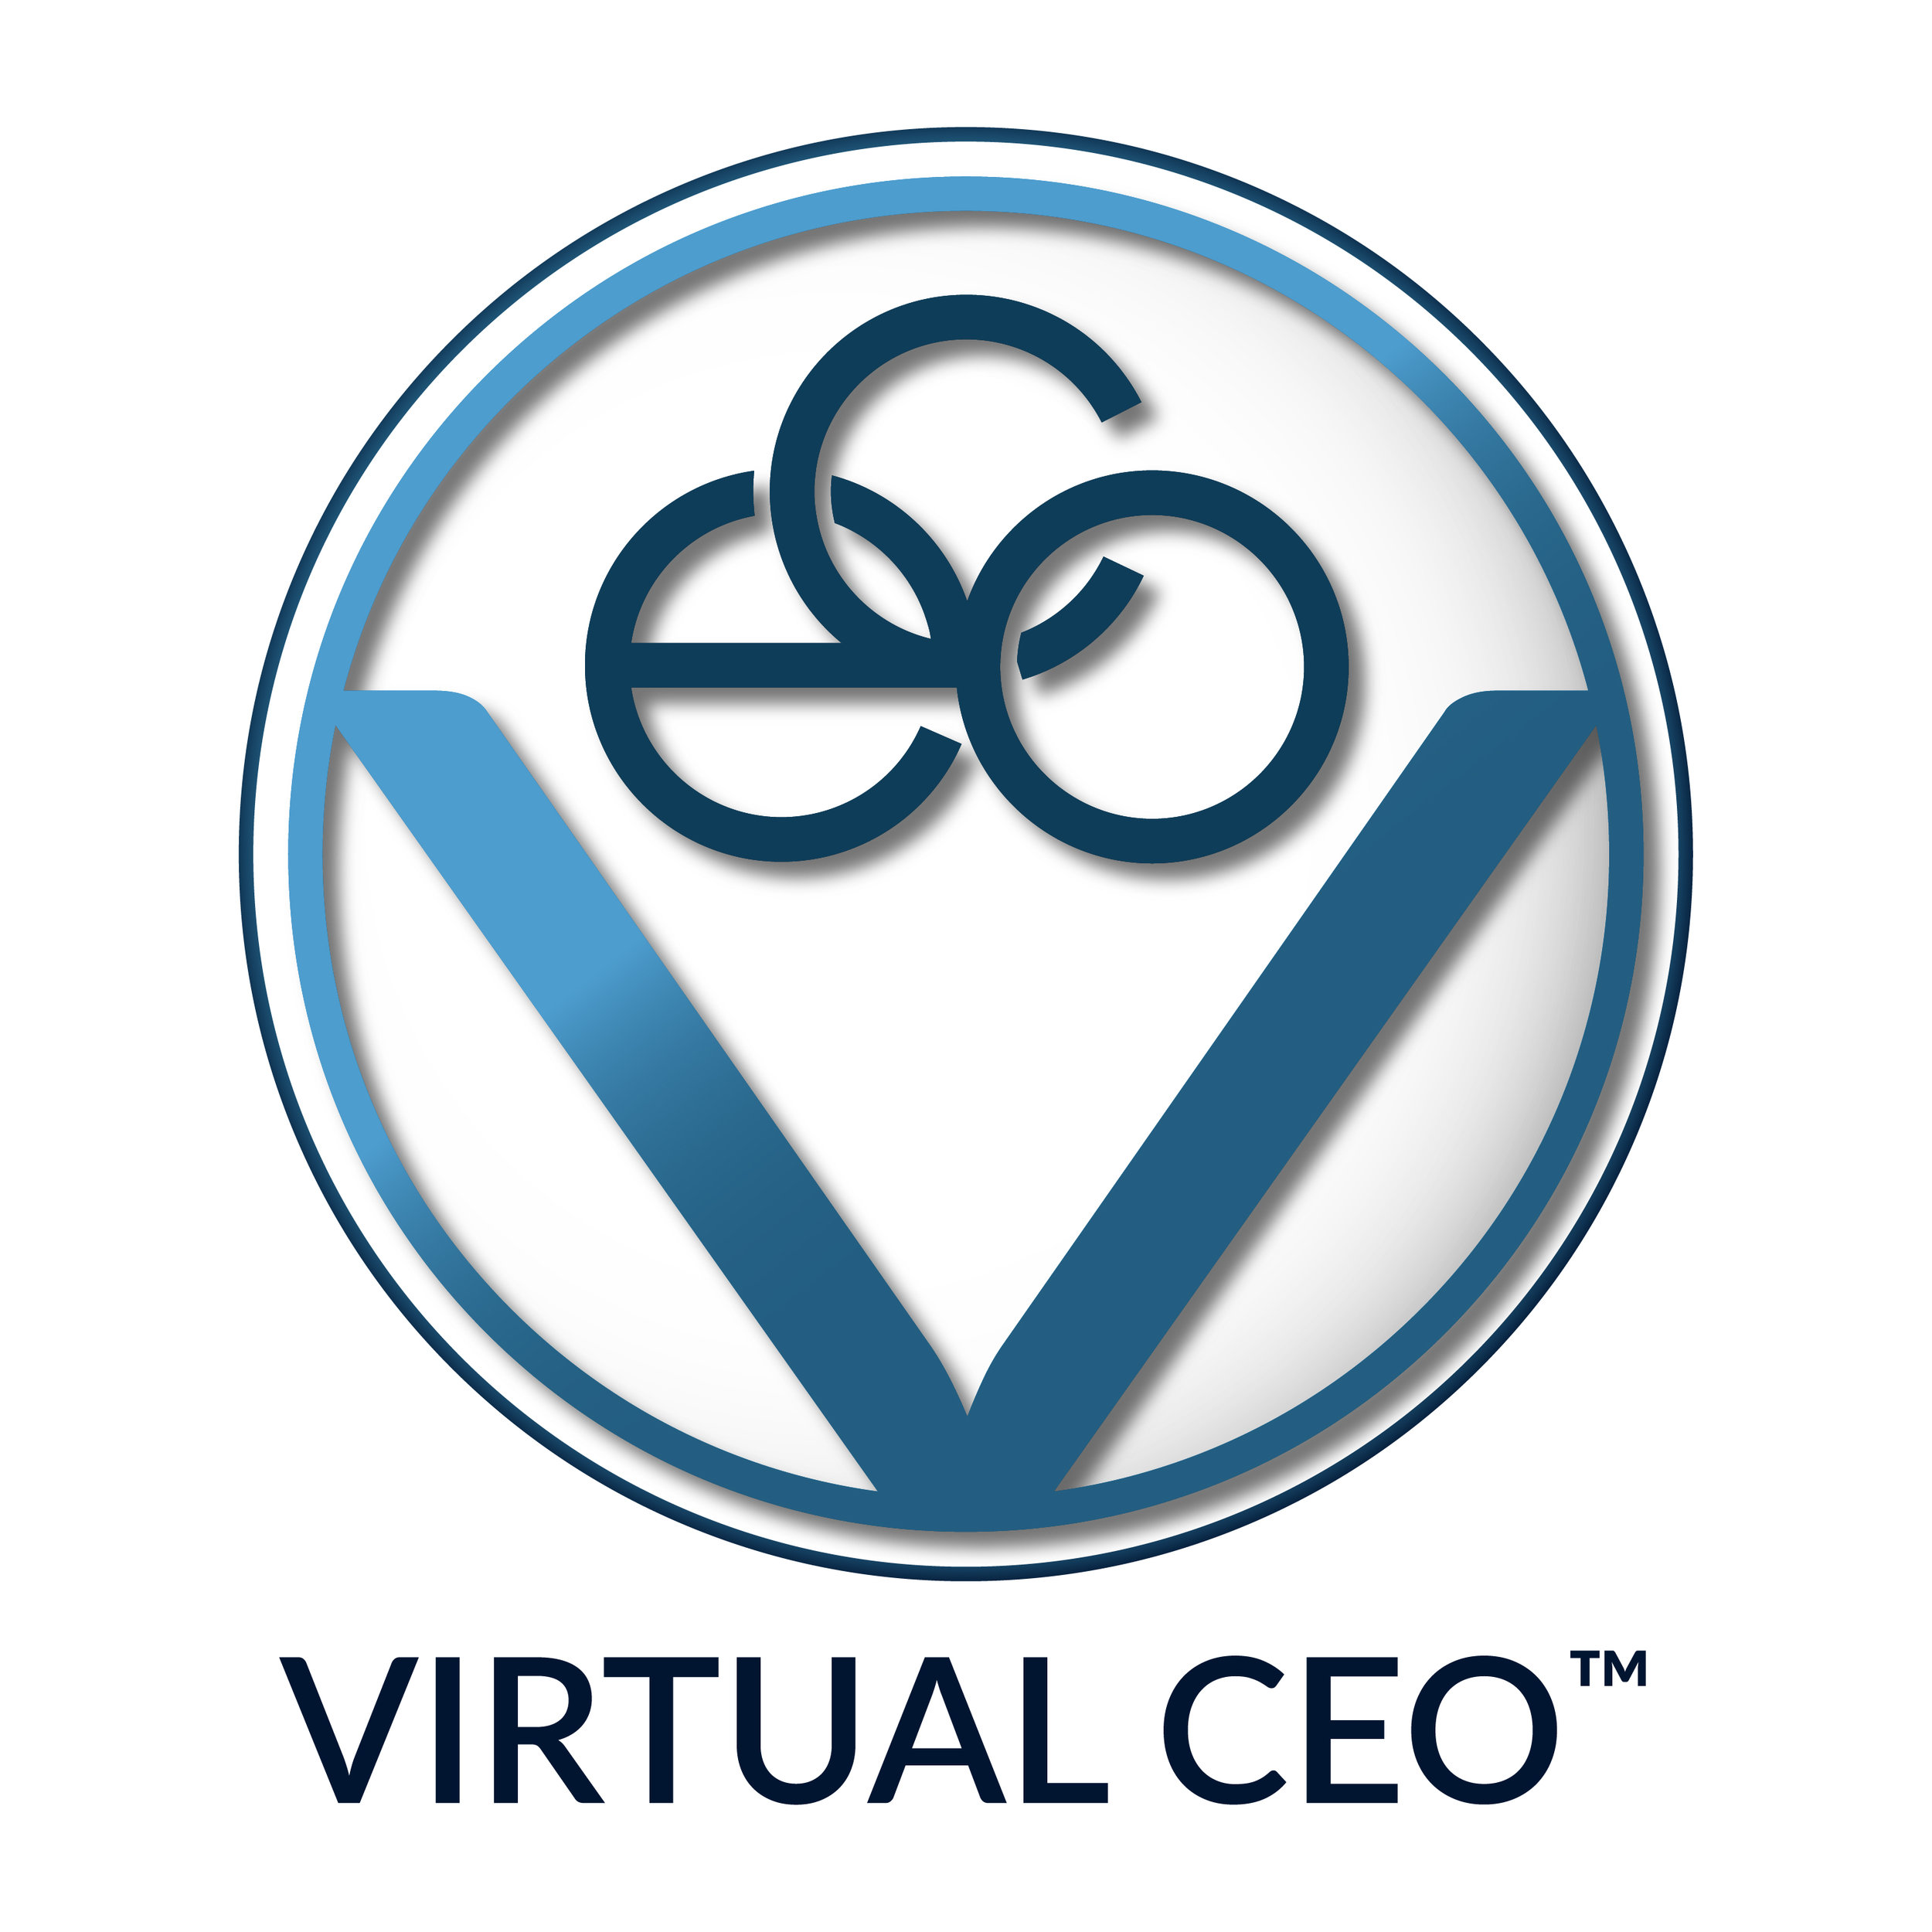 Virtual CEO   A highly-reliable, uncompromising Leadership Development firm out of San Juan Capistrano,CA.